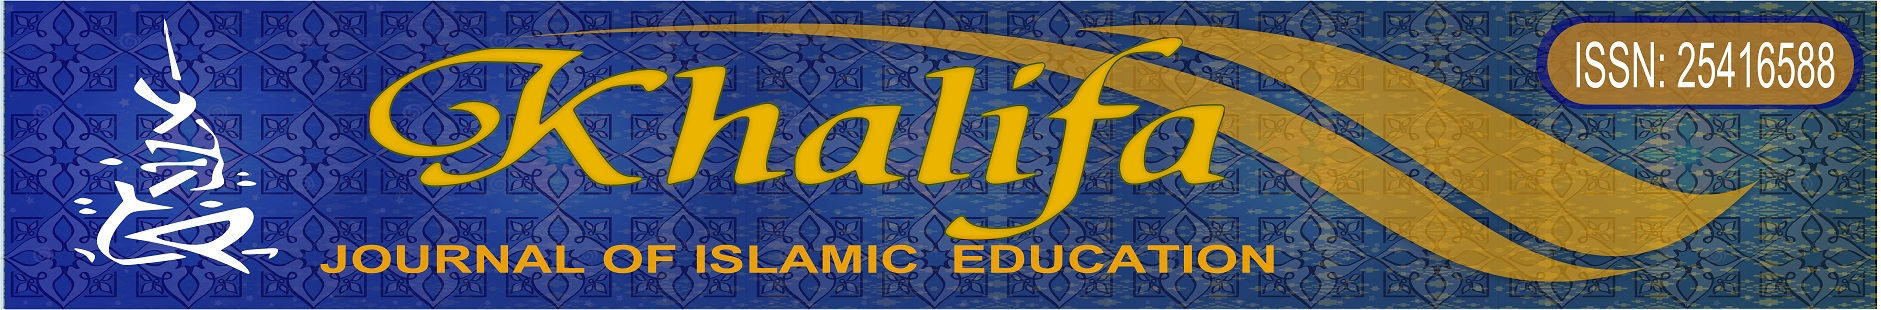 Journal of Islamic Education